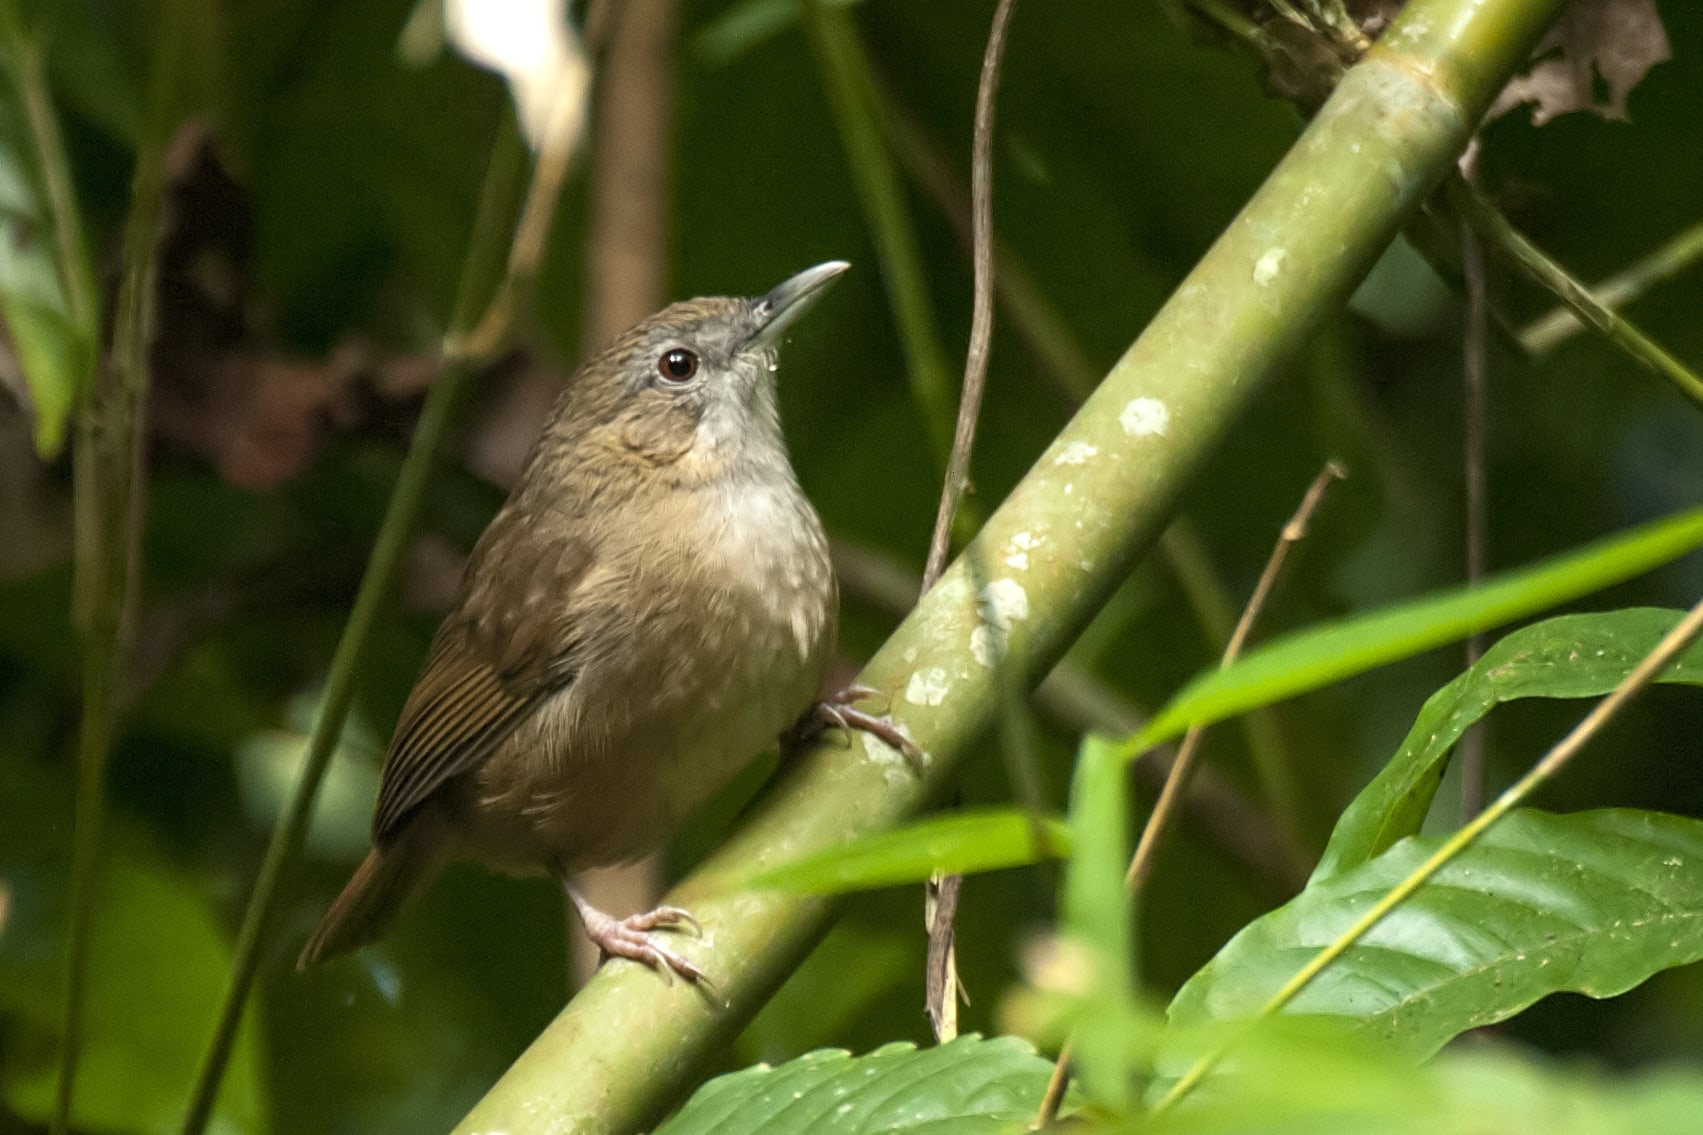 The Abbott's babbler is what birders refer to as a skulker, a bird which mostly remains within the cover of vegetation. Photo: Udayan Borthakur